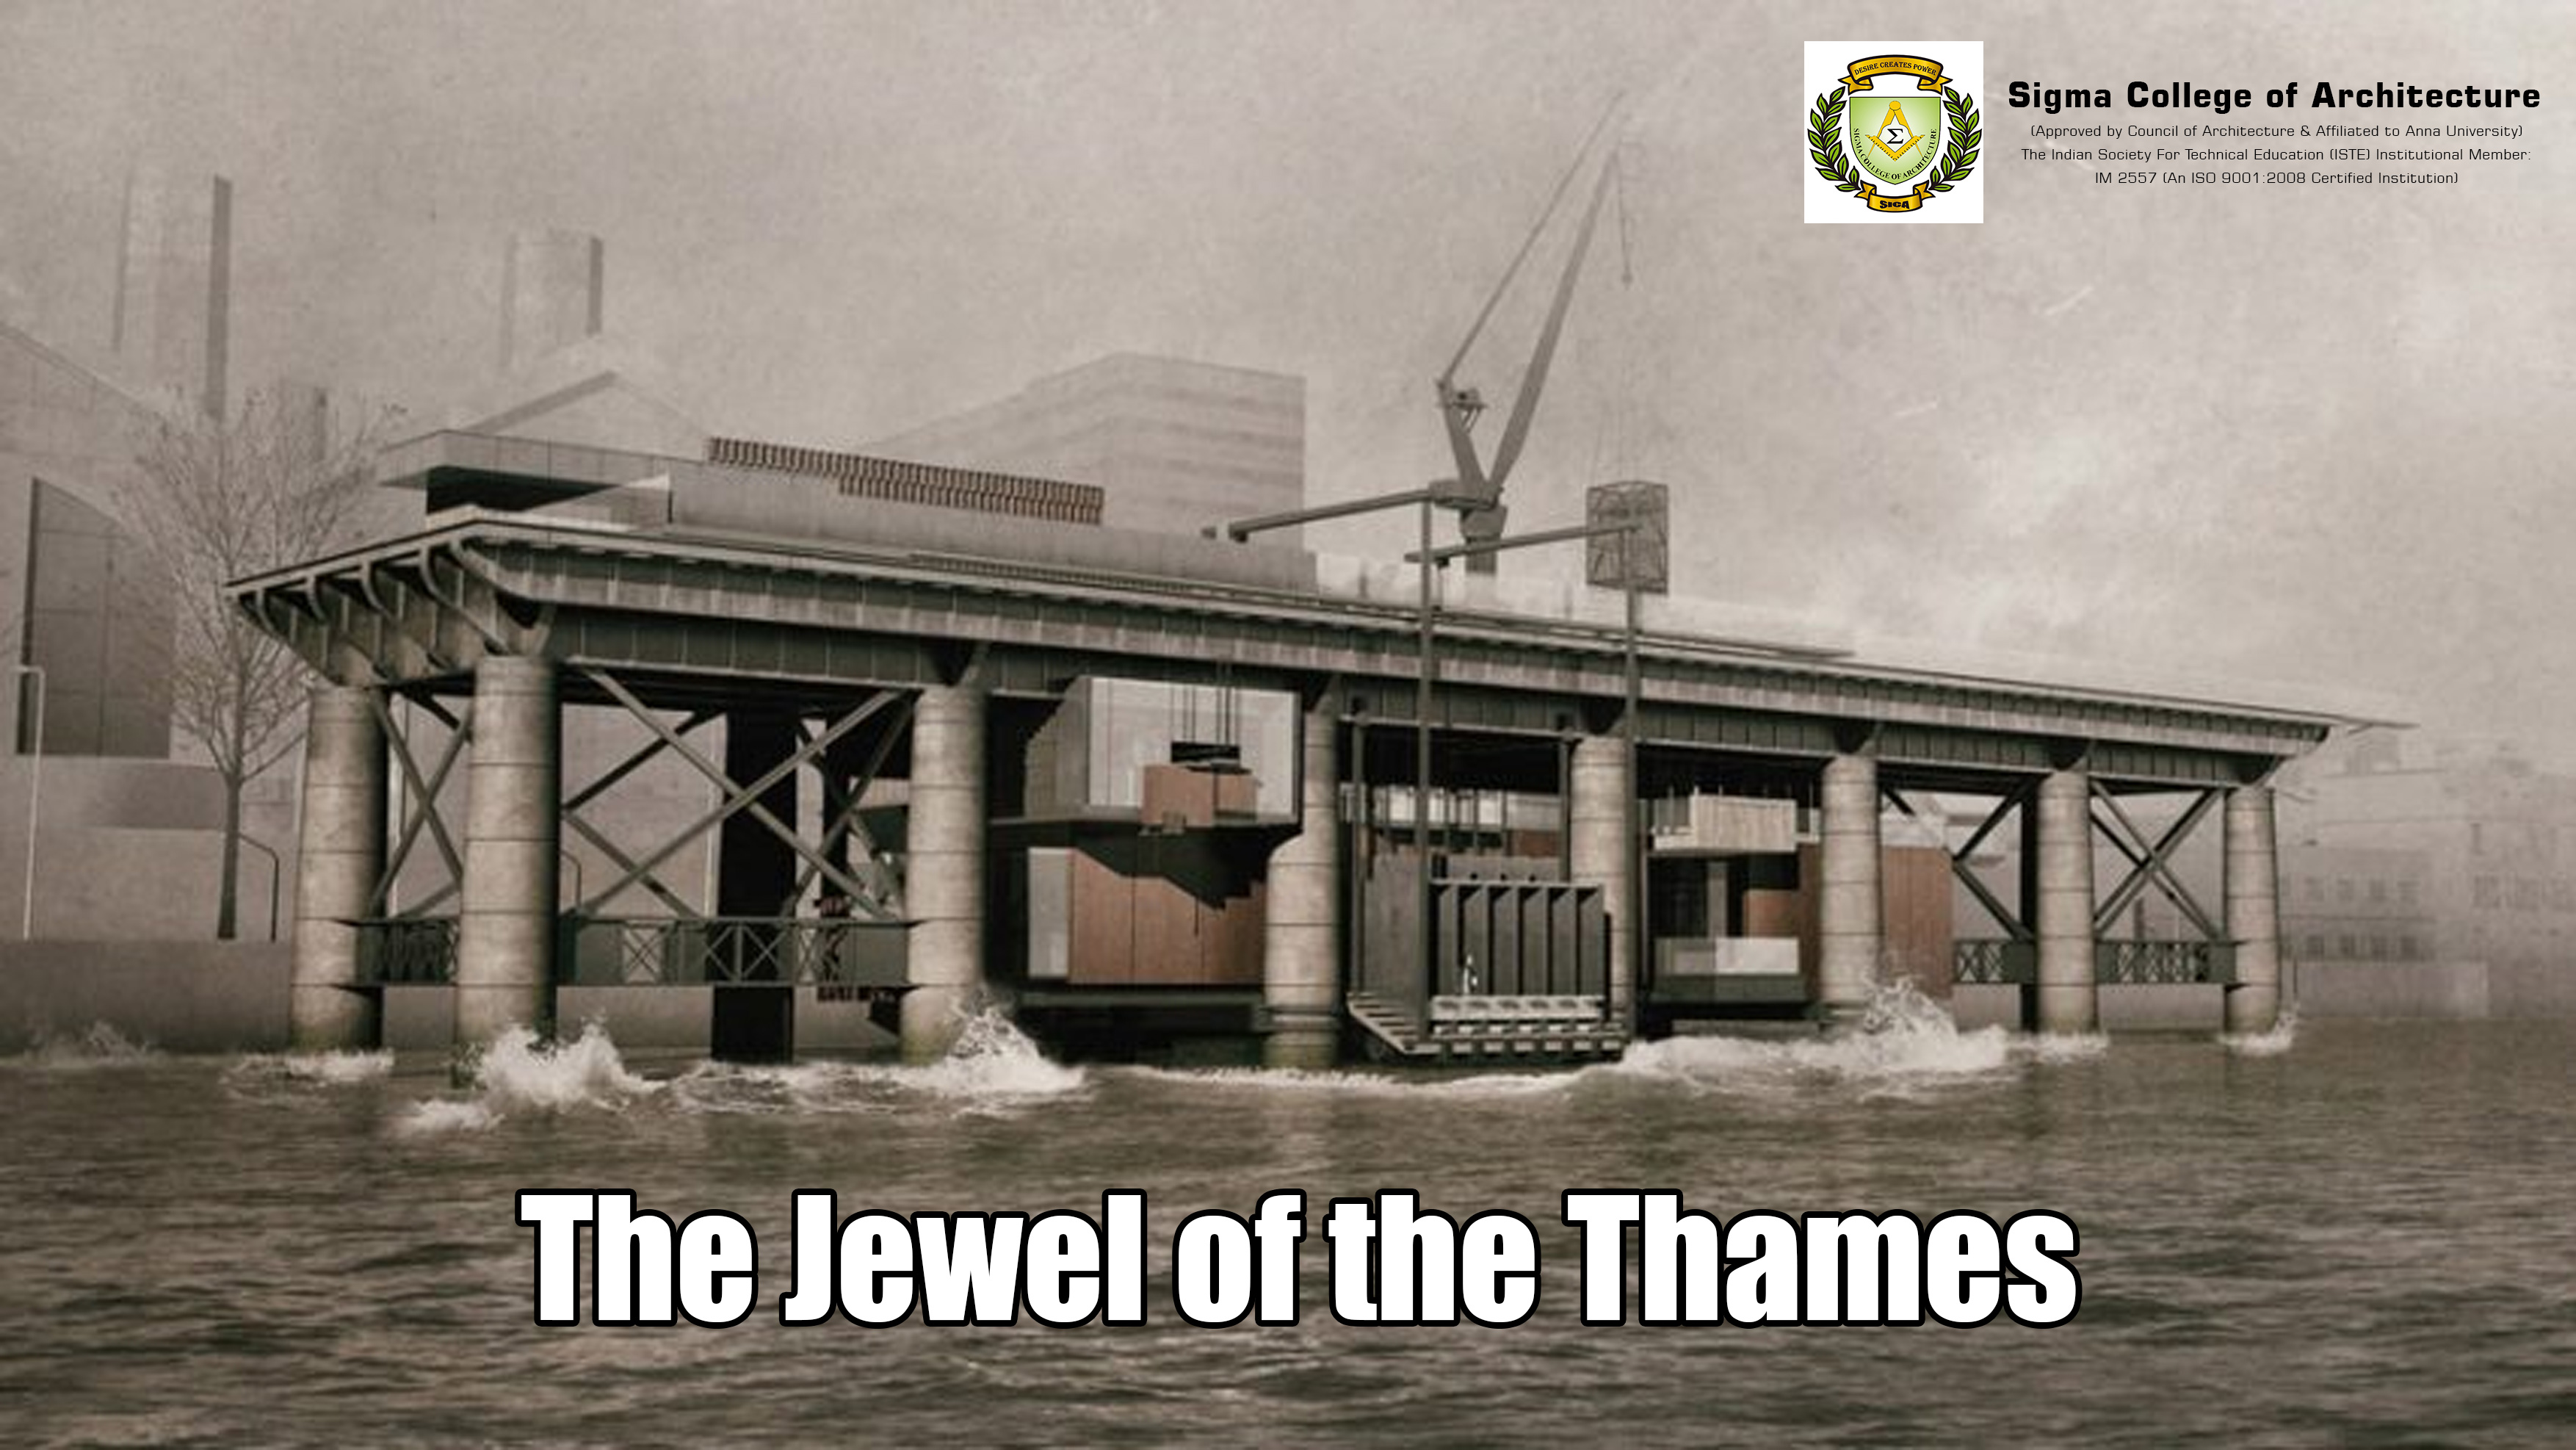 The Jewel of the Thames